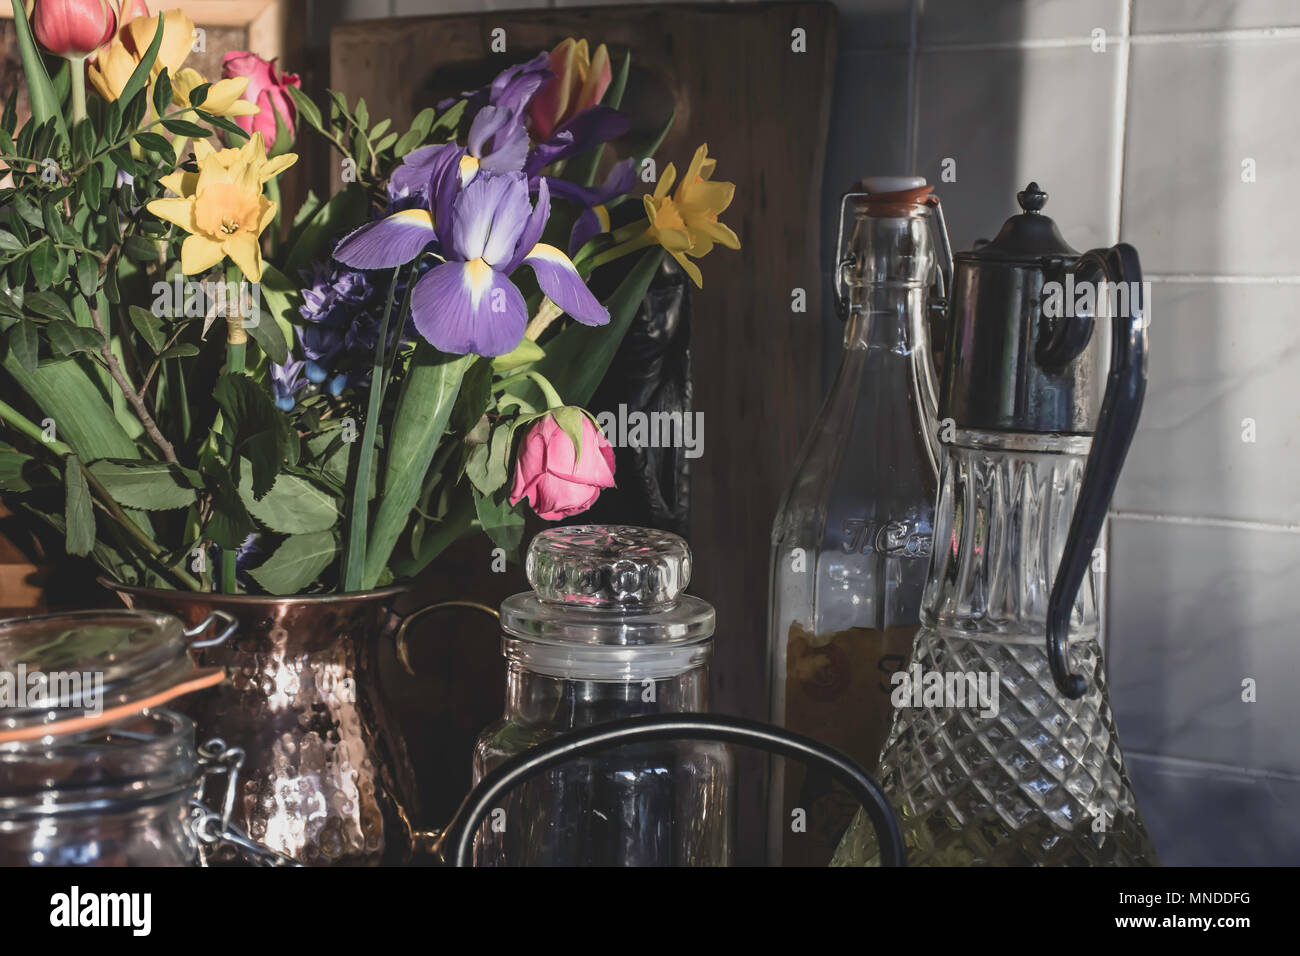 Bouquet of spring flowers in stylish kitchen,Uk.Kitchen decoration, still life composition, natural sunlight from window.Afternoon light.Cut flowers. - Stock Image